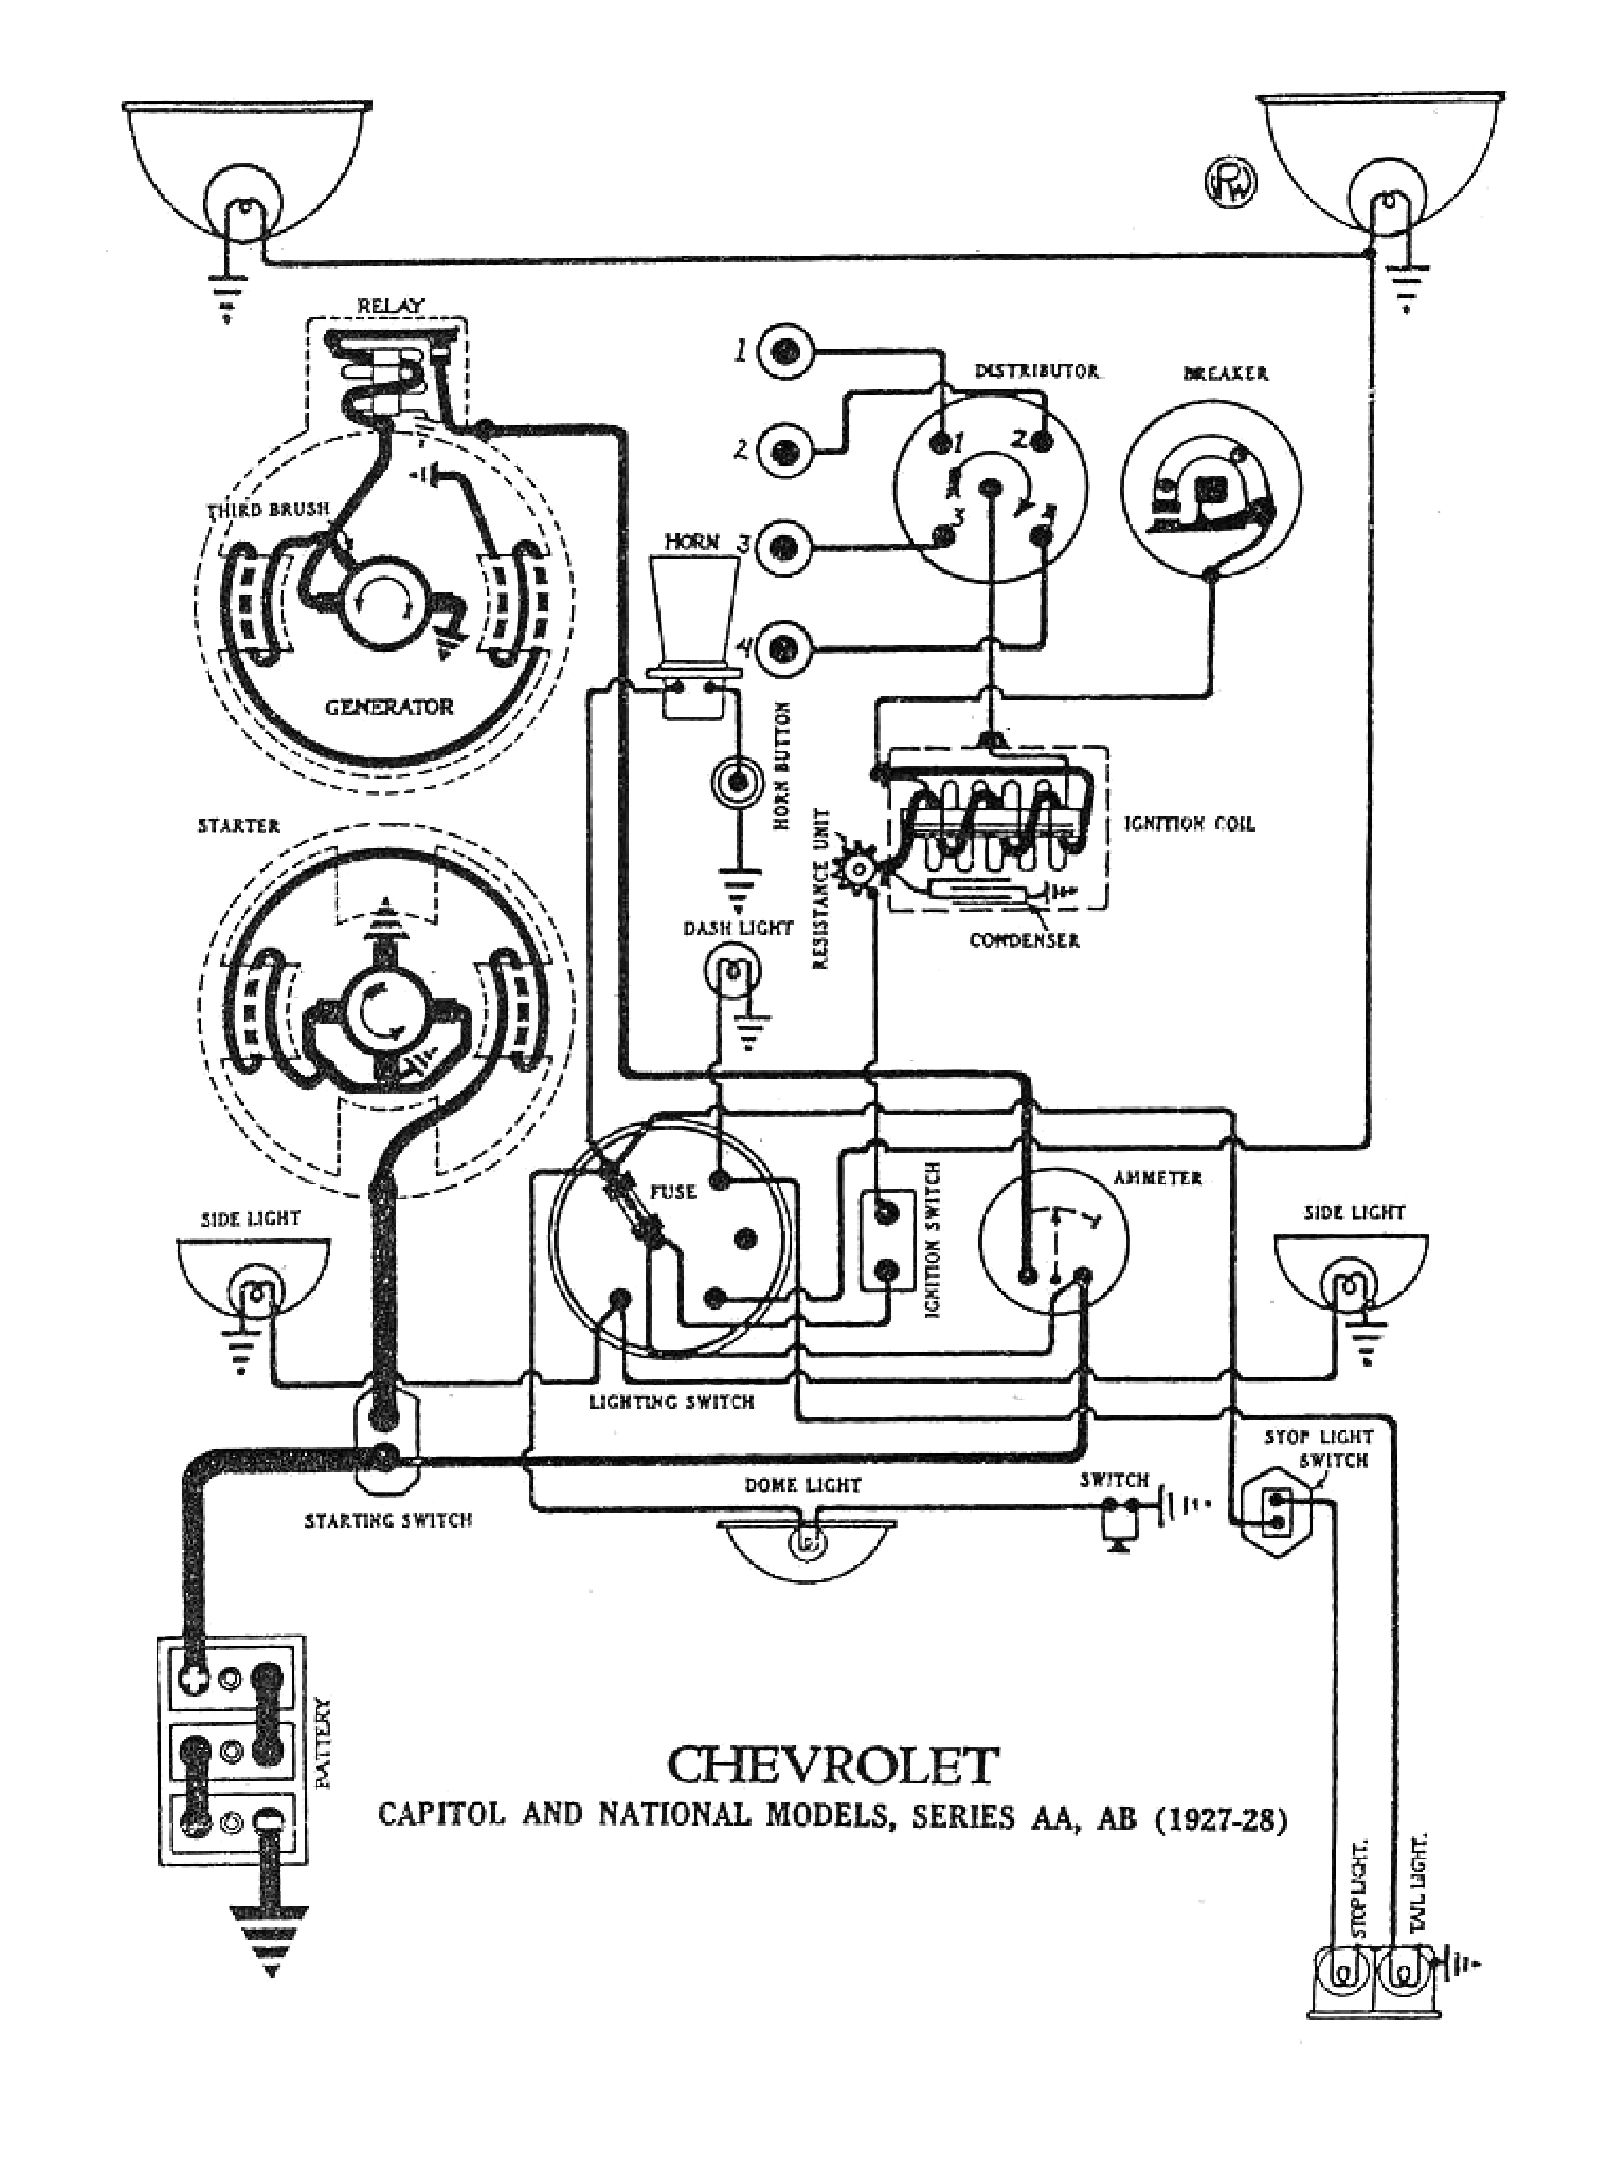 Gm Tbi Coil Wiring Diagram Library 1985 Chevy 305 Engine Schematic 1928 Diagrams